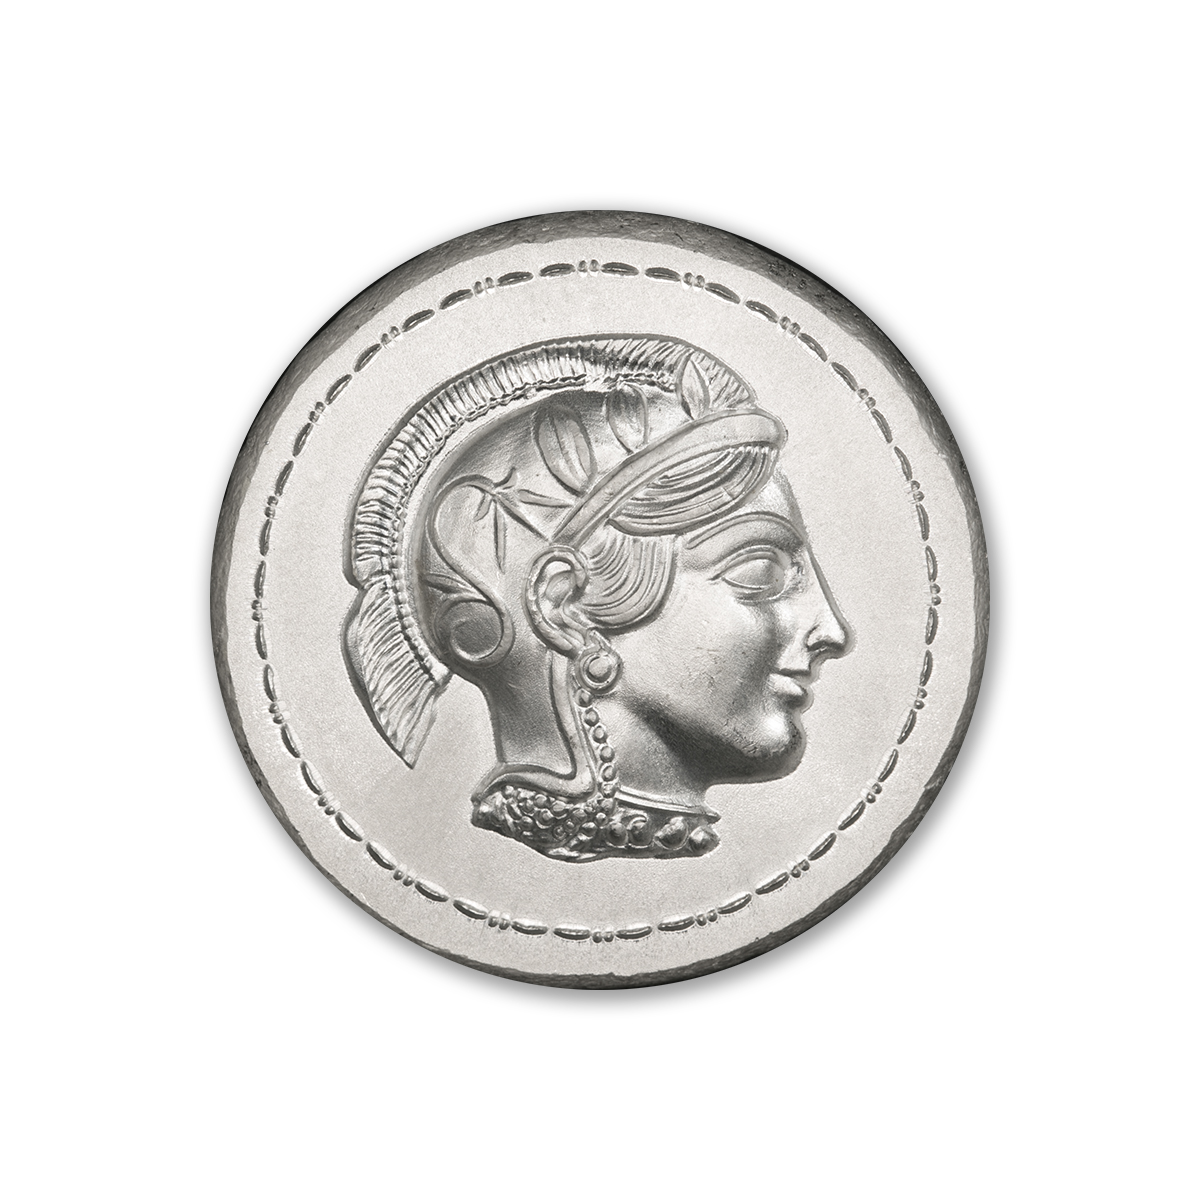 ATHENA AND OWL TETRADRACHM – UHR – 2 TROY OUNCE – 36MM – (LIMITED MINTAGE: 1,000)